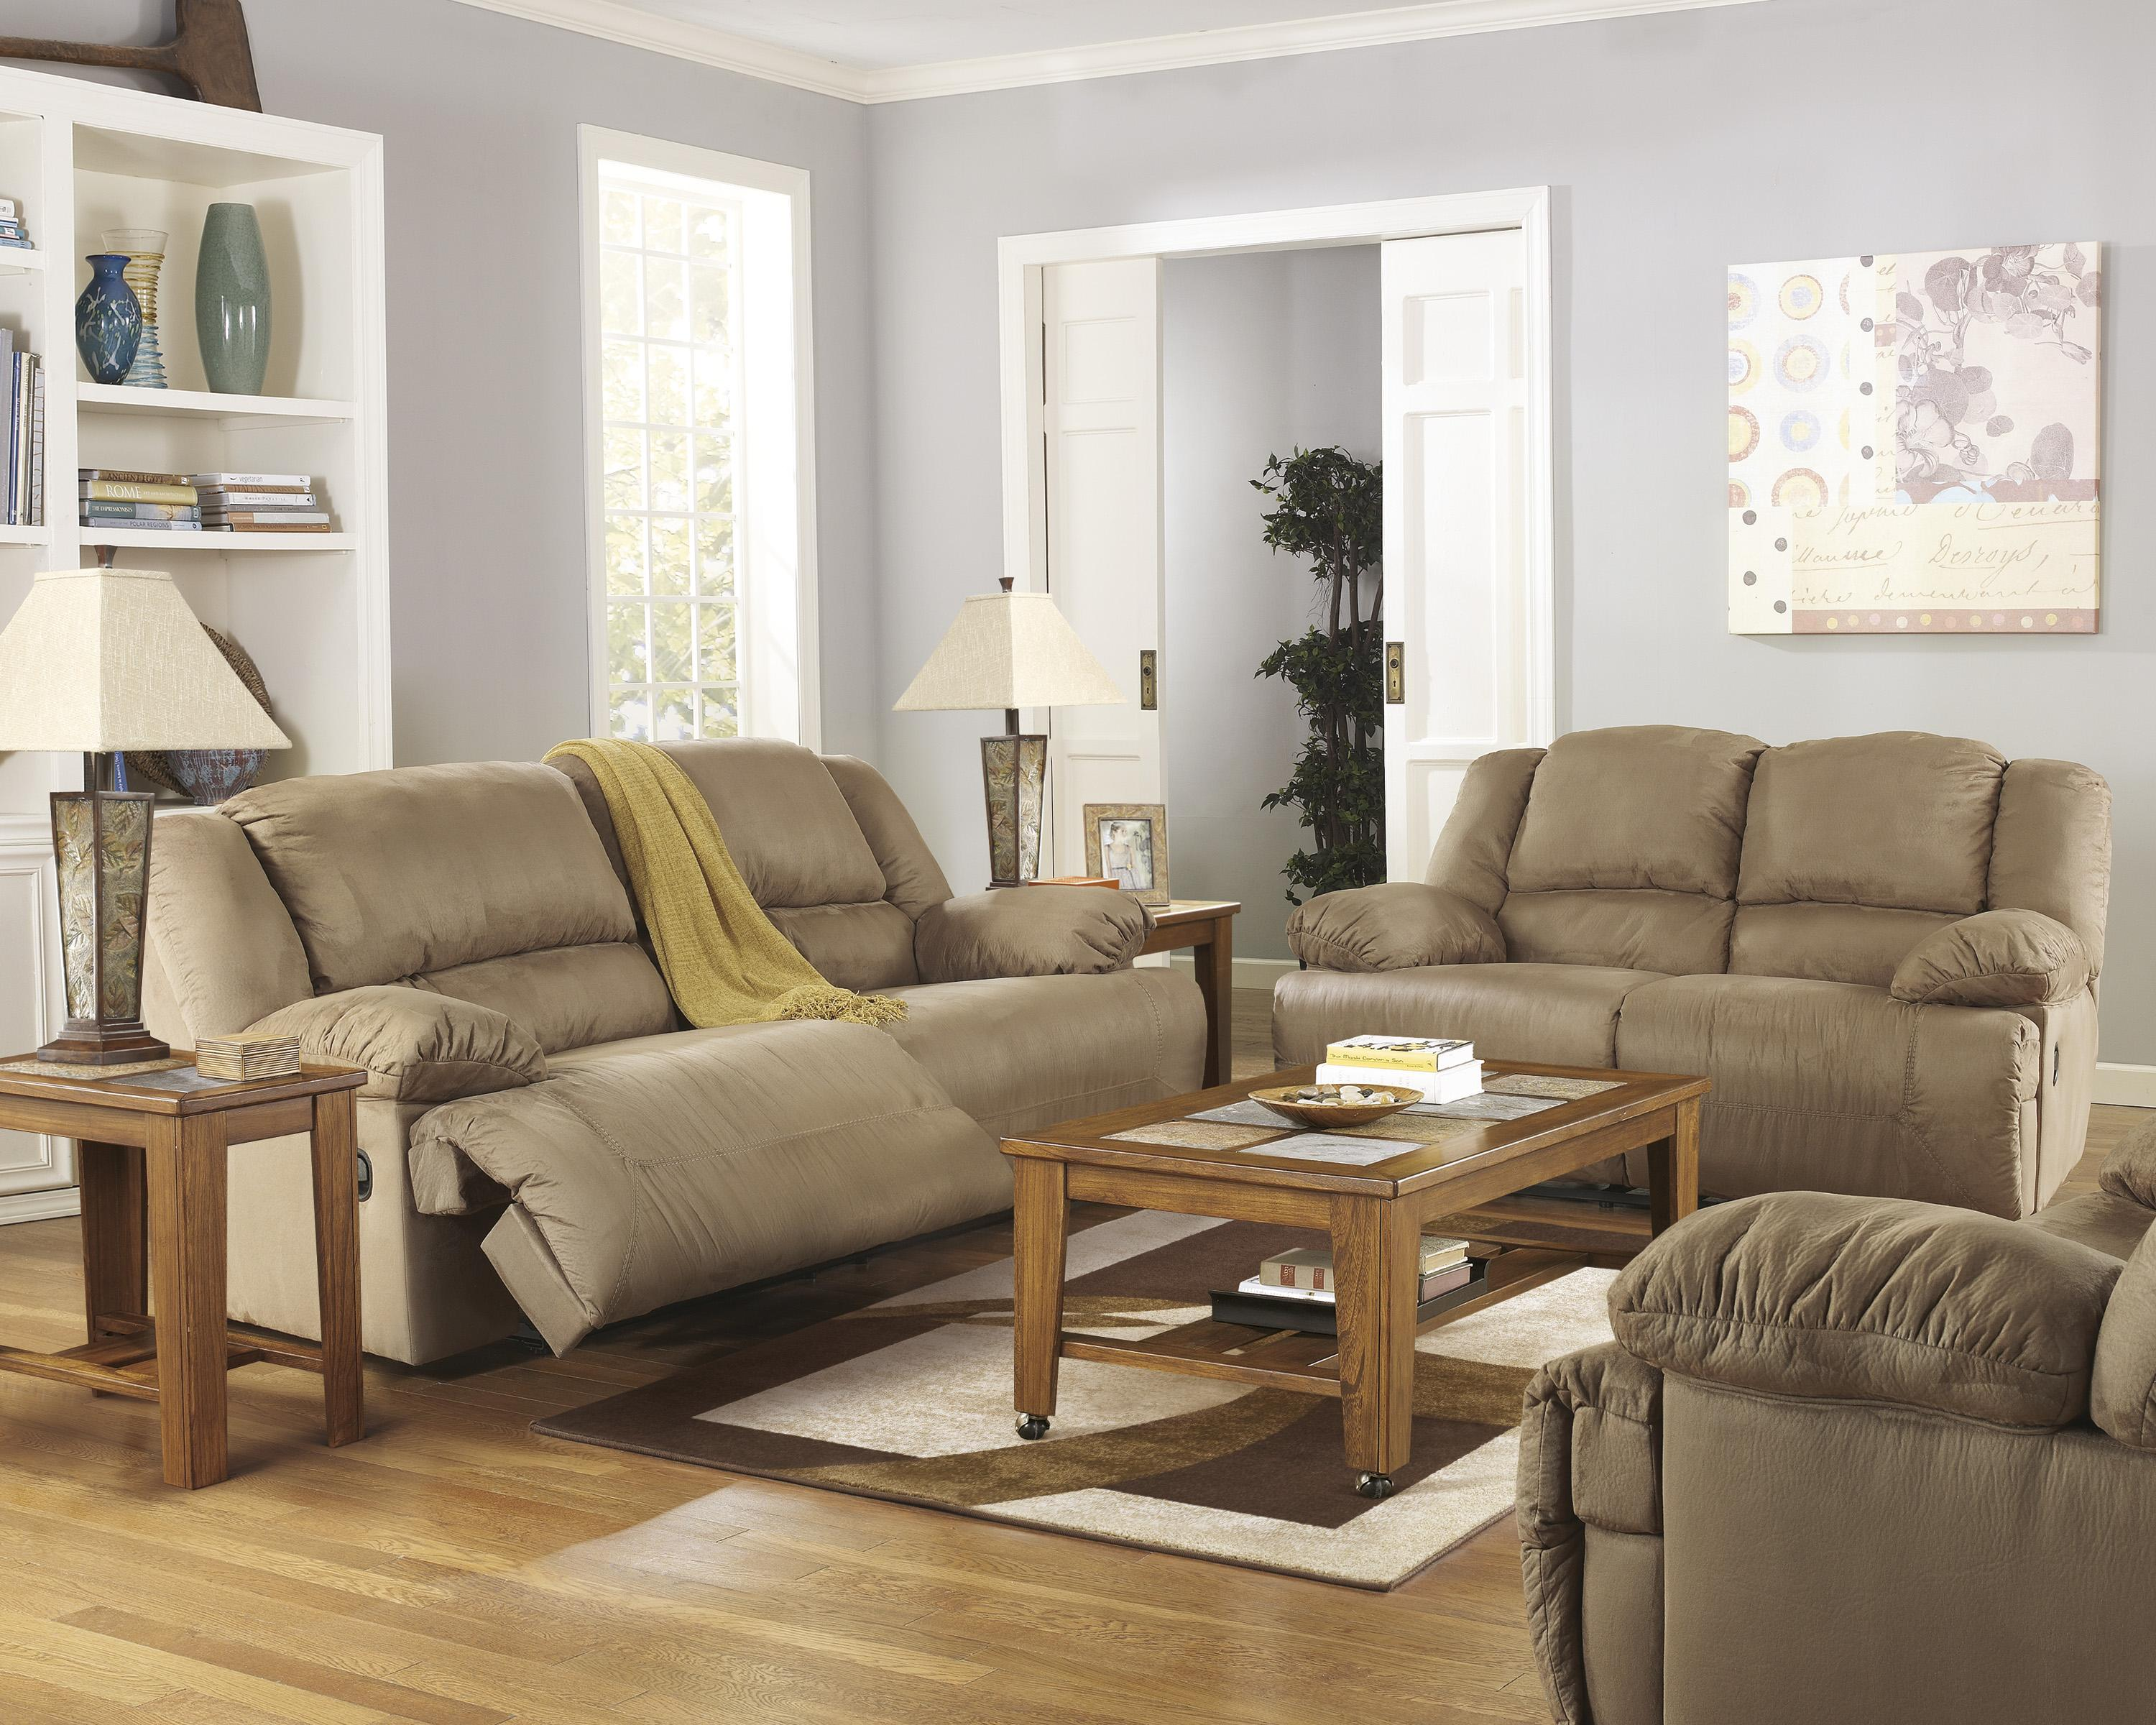 Hogan - Mocha Reclining Living Room Group by Signature Design by Ashley at Zak's Warehouse Clearance Center